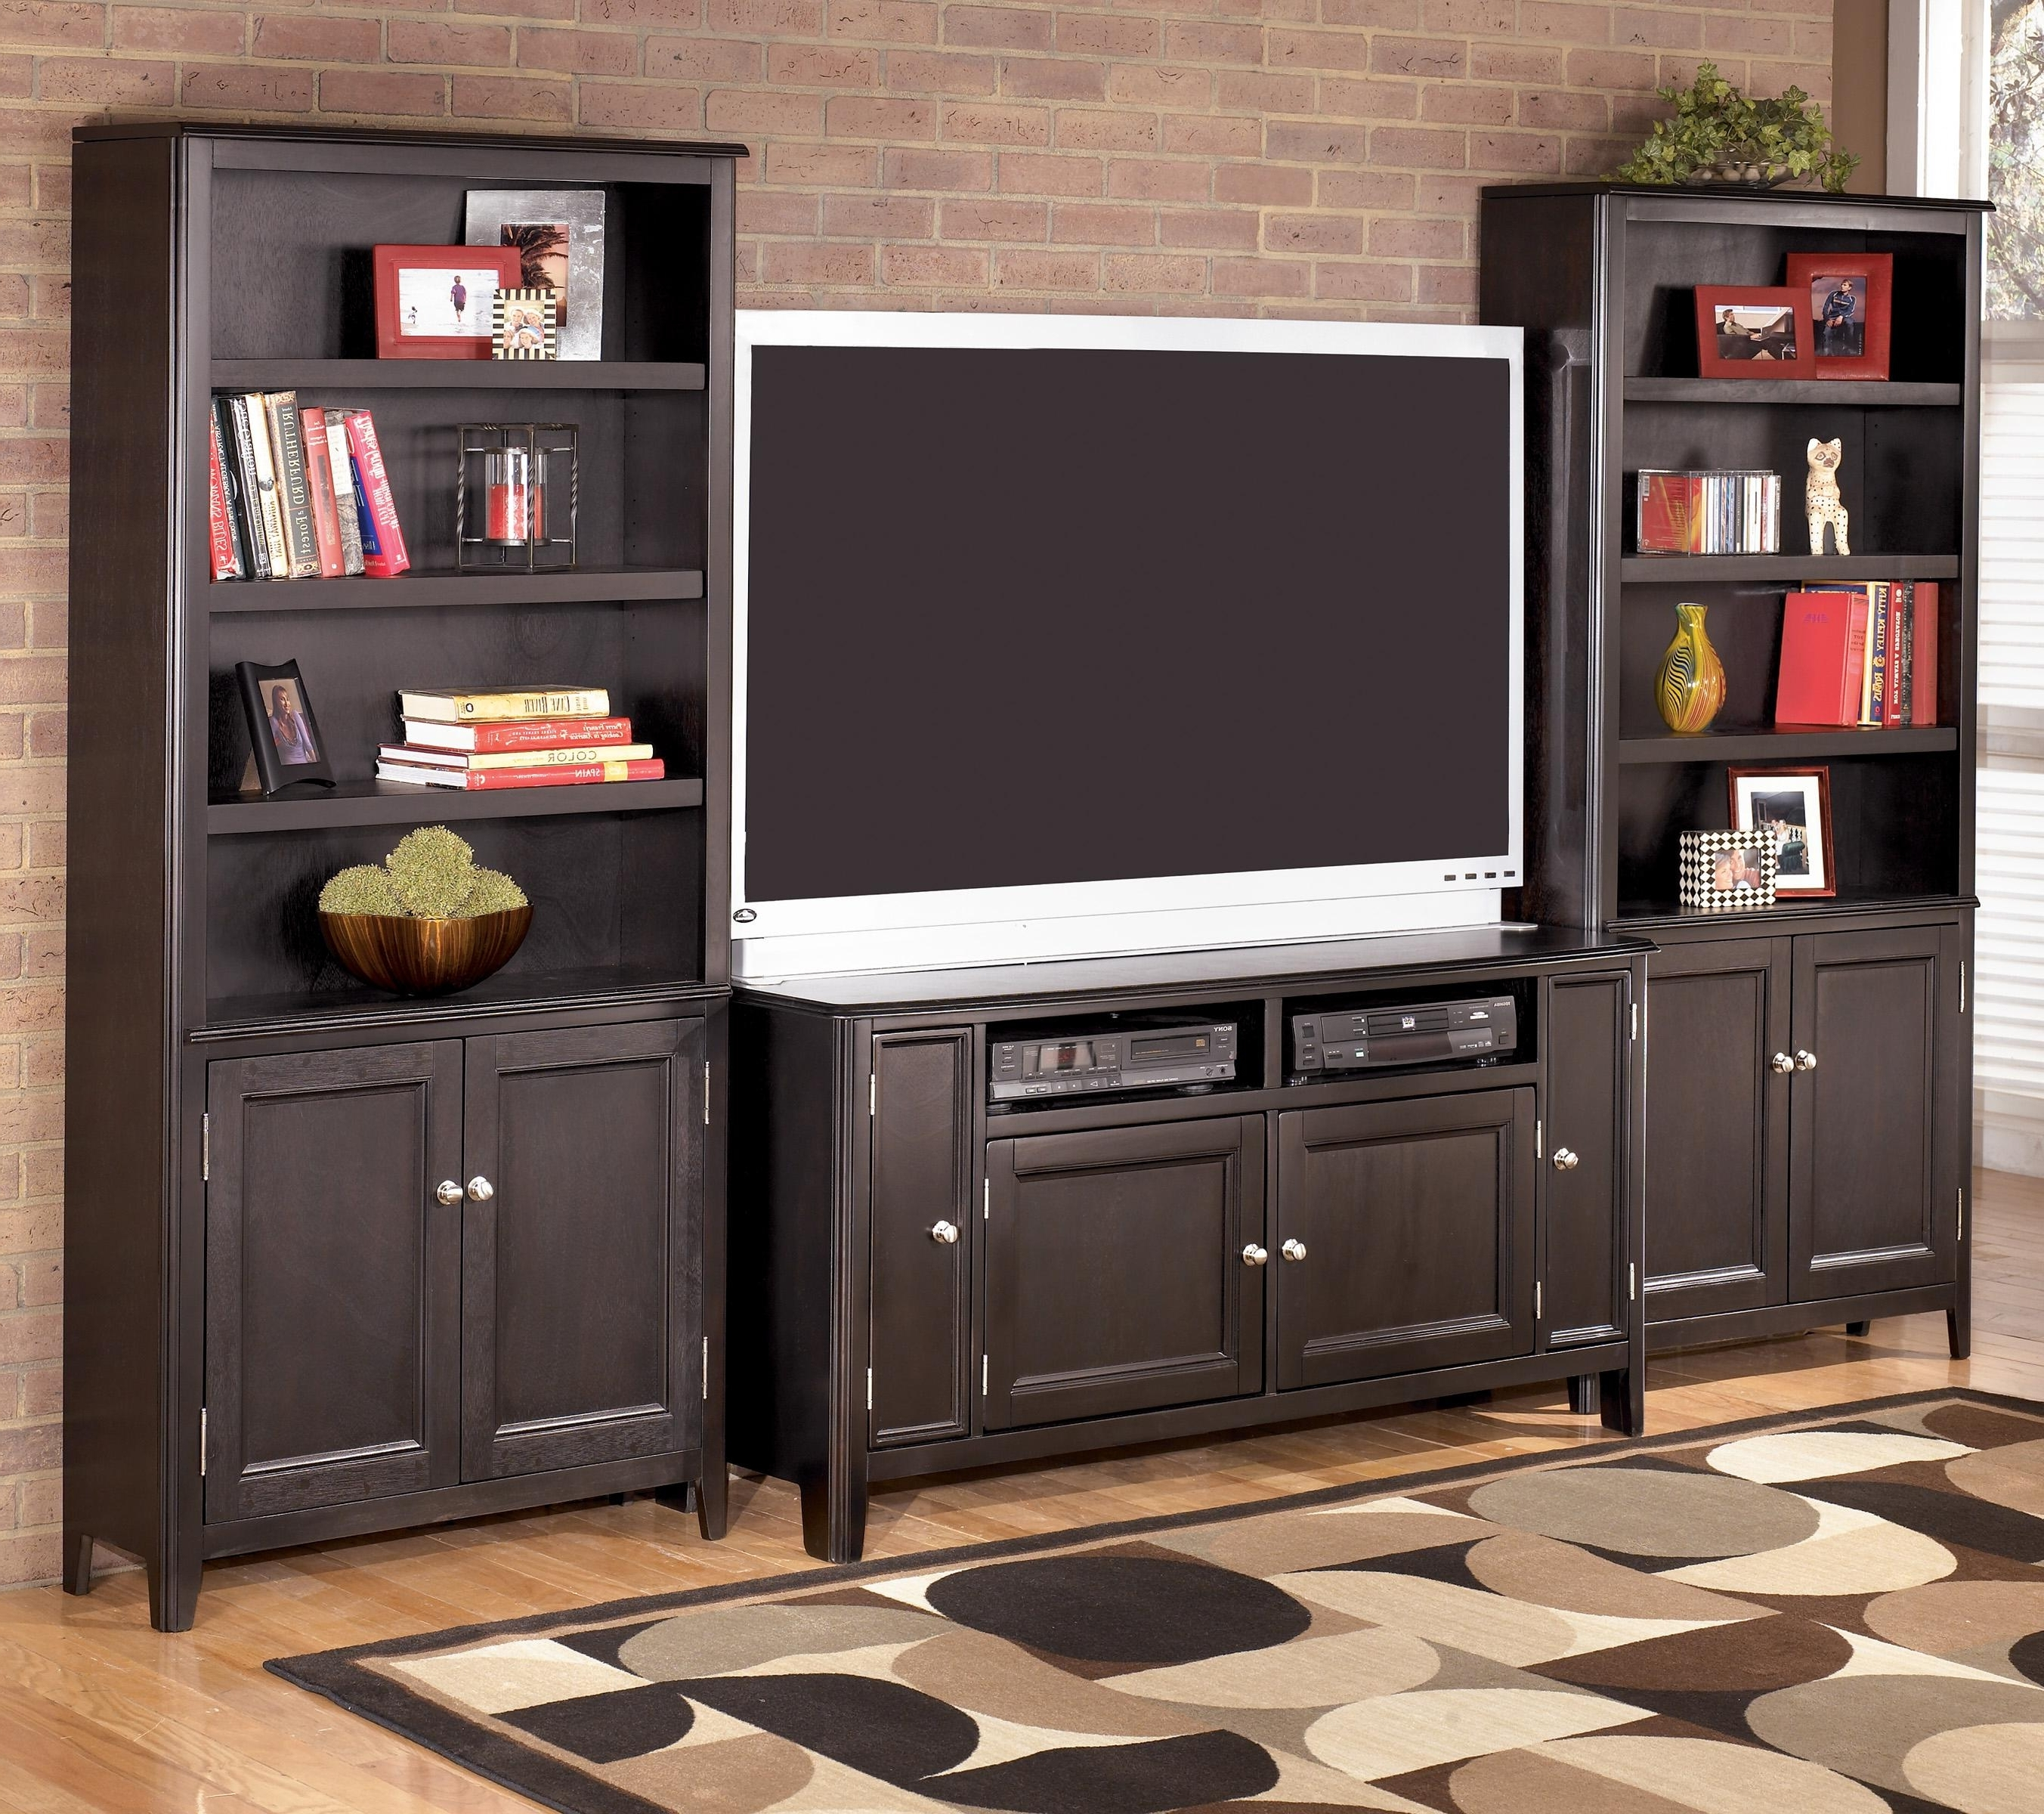 Newest Signature Designashley Carlyle 60 Inch Tv Stand & 2 Large Door Pertaining To Bookcases And Tv Unit (View 10 of 15)